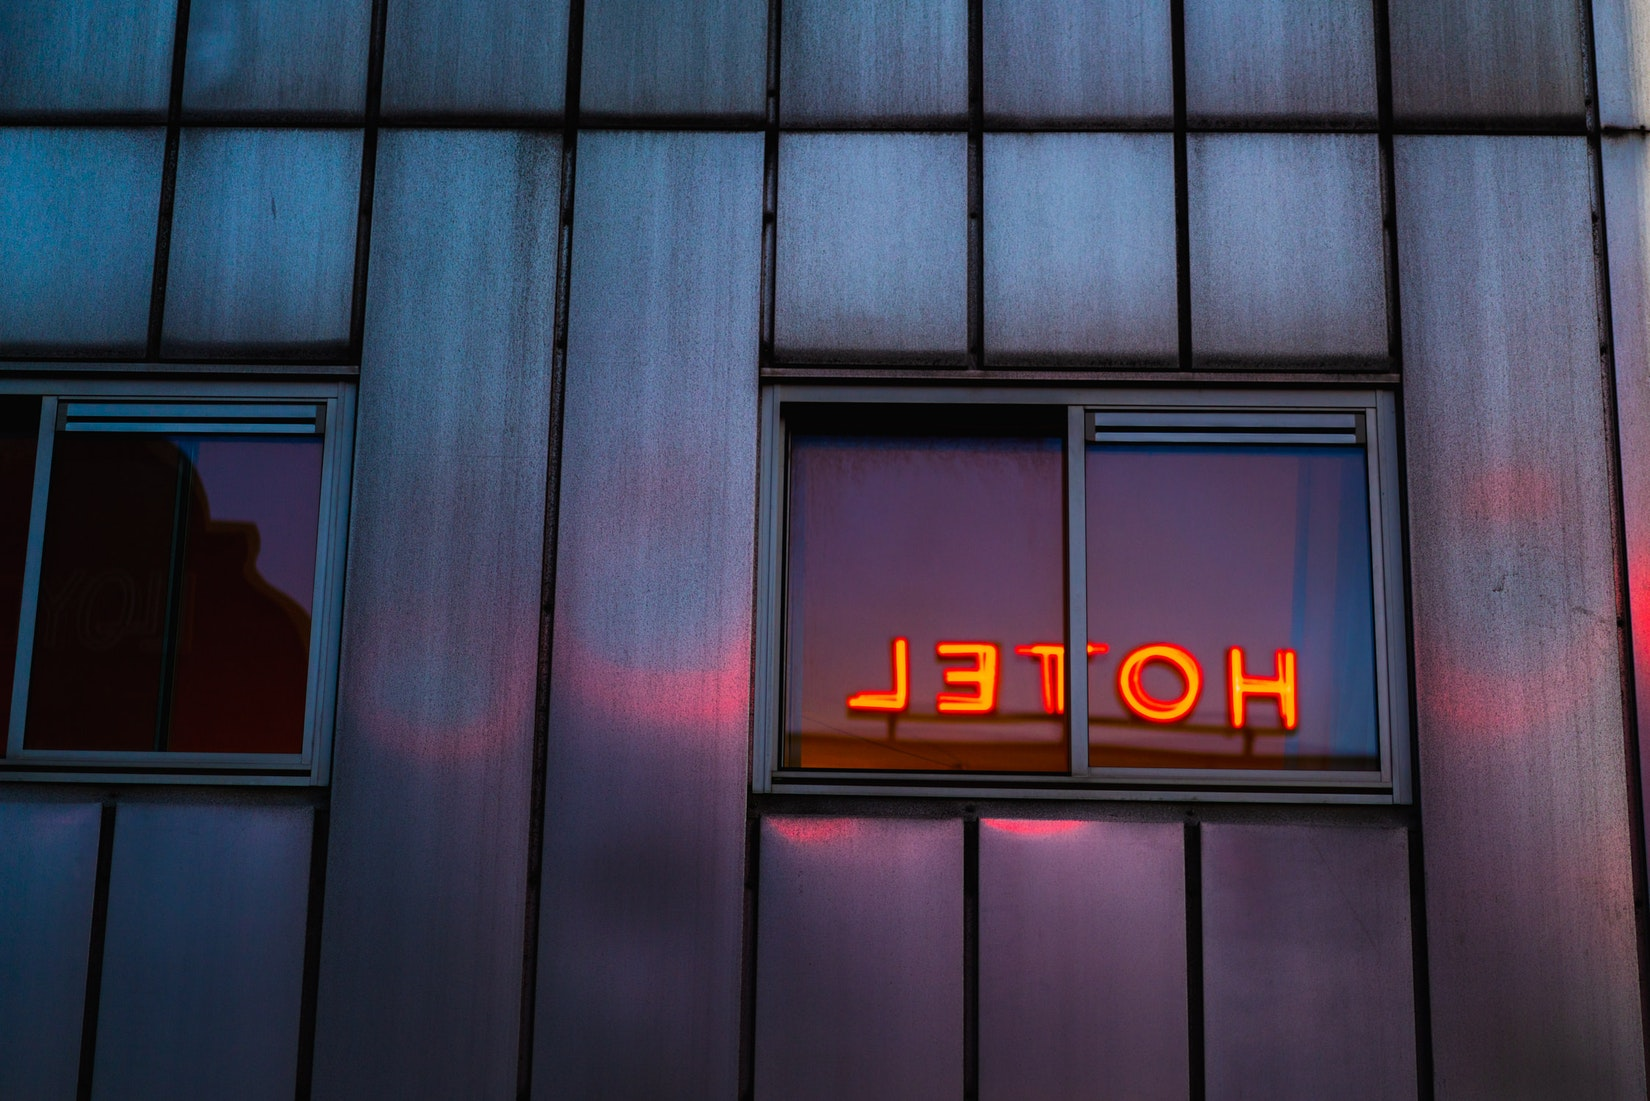 Neon lights of HOTEL reflecting in a window